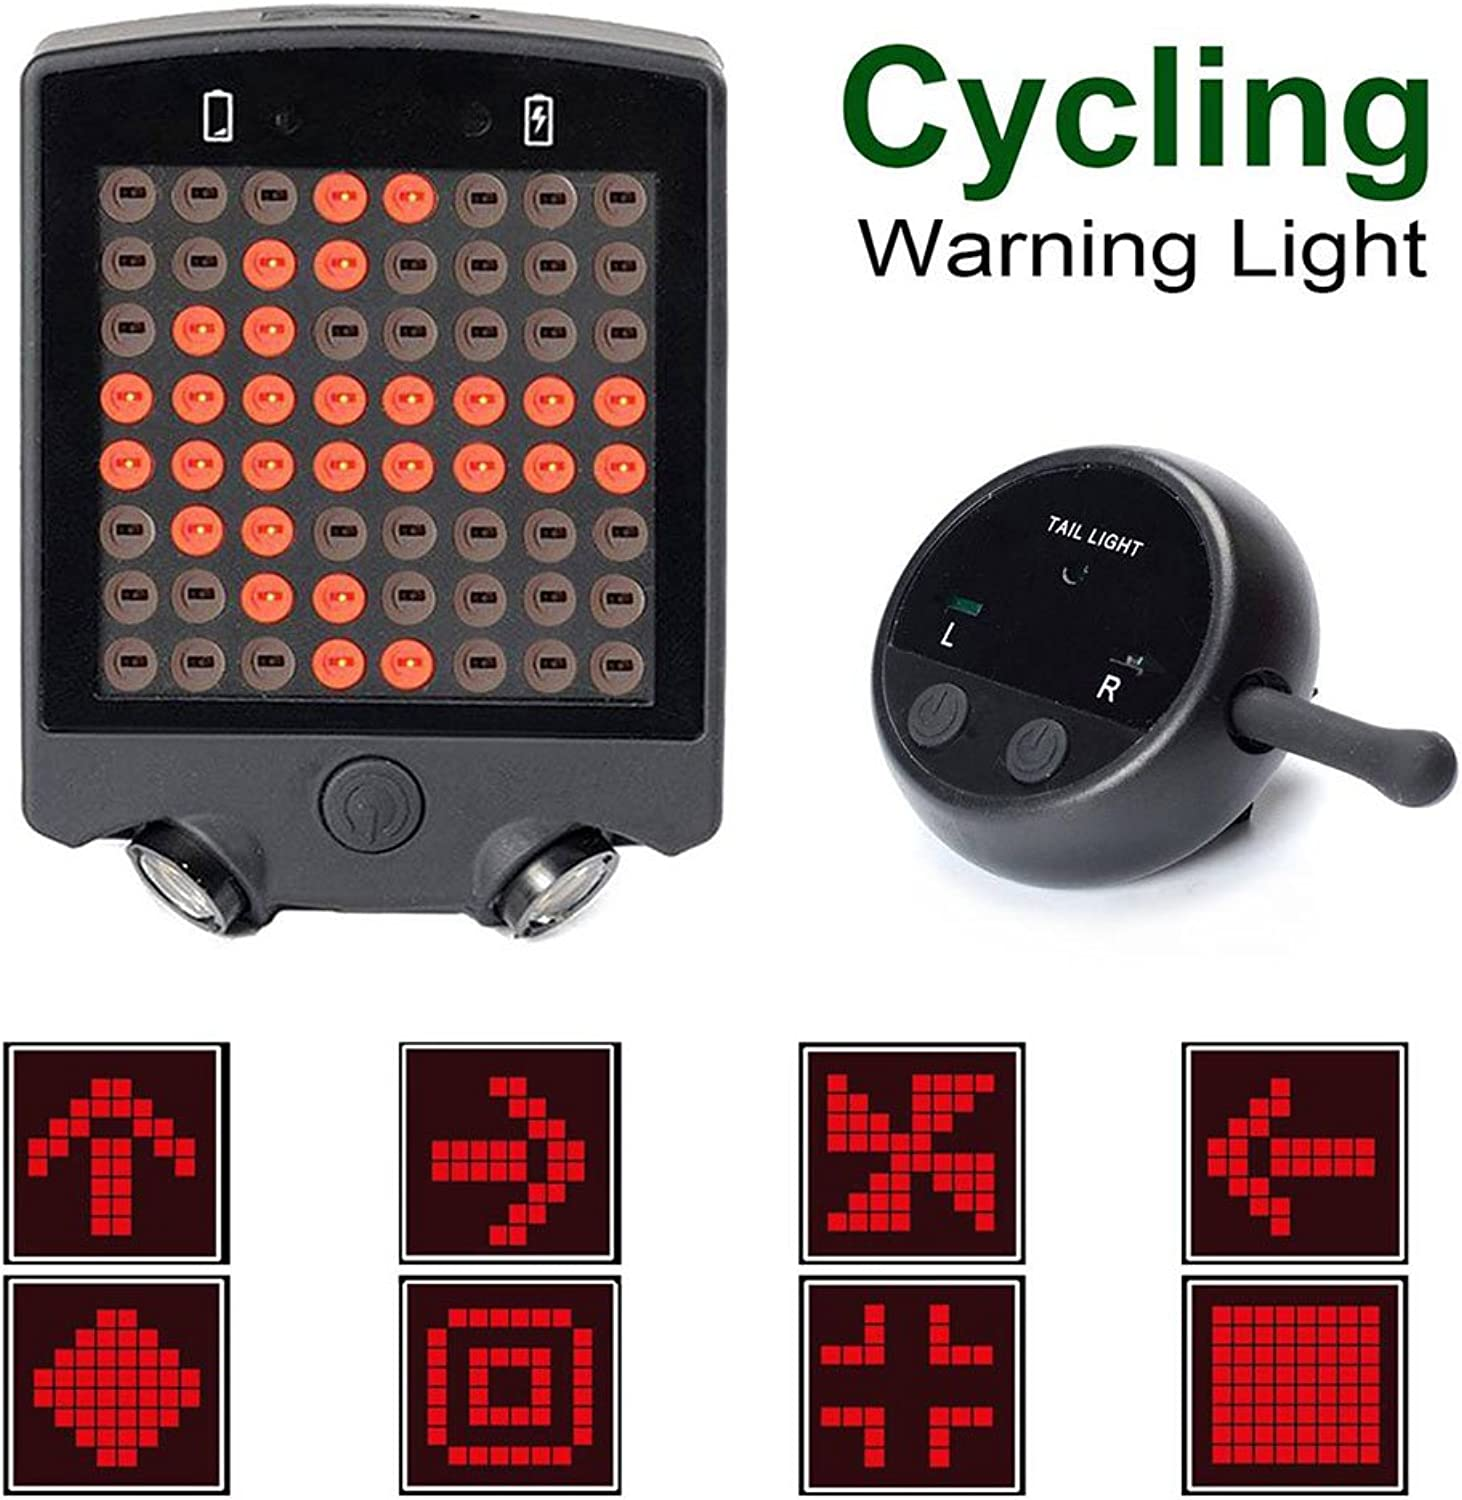 Gazelle Trading Bicycle Turn Signals Waterproof Remote Control Wireless RechargeableTail Light 64 LED Bike Rear Tail Red Laser Light Safety Warning Line Easy to Install